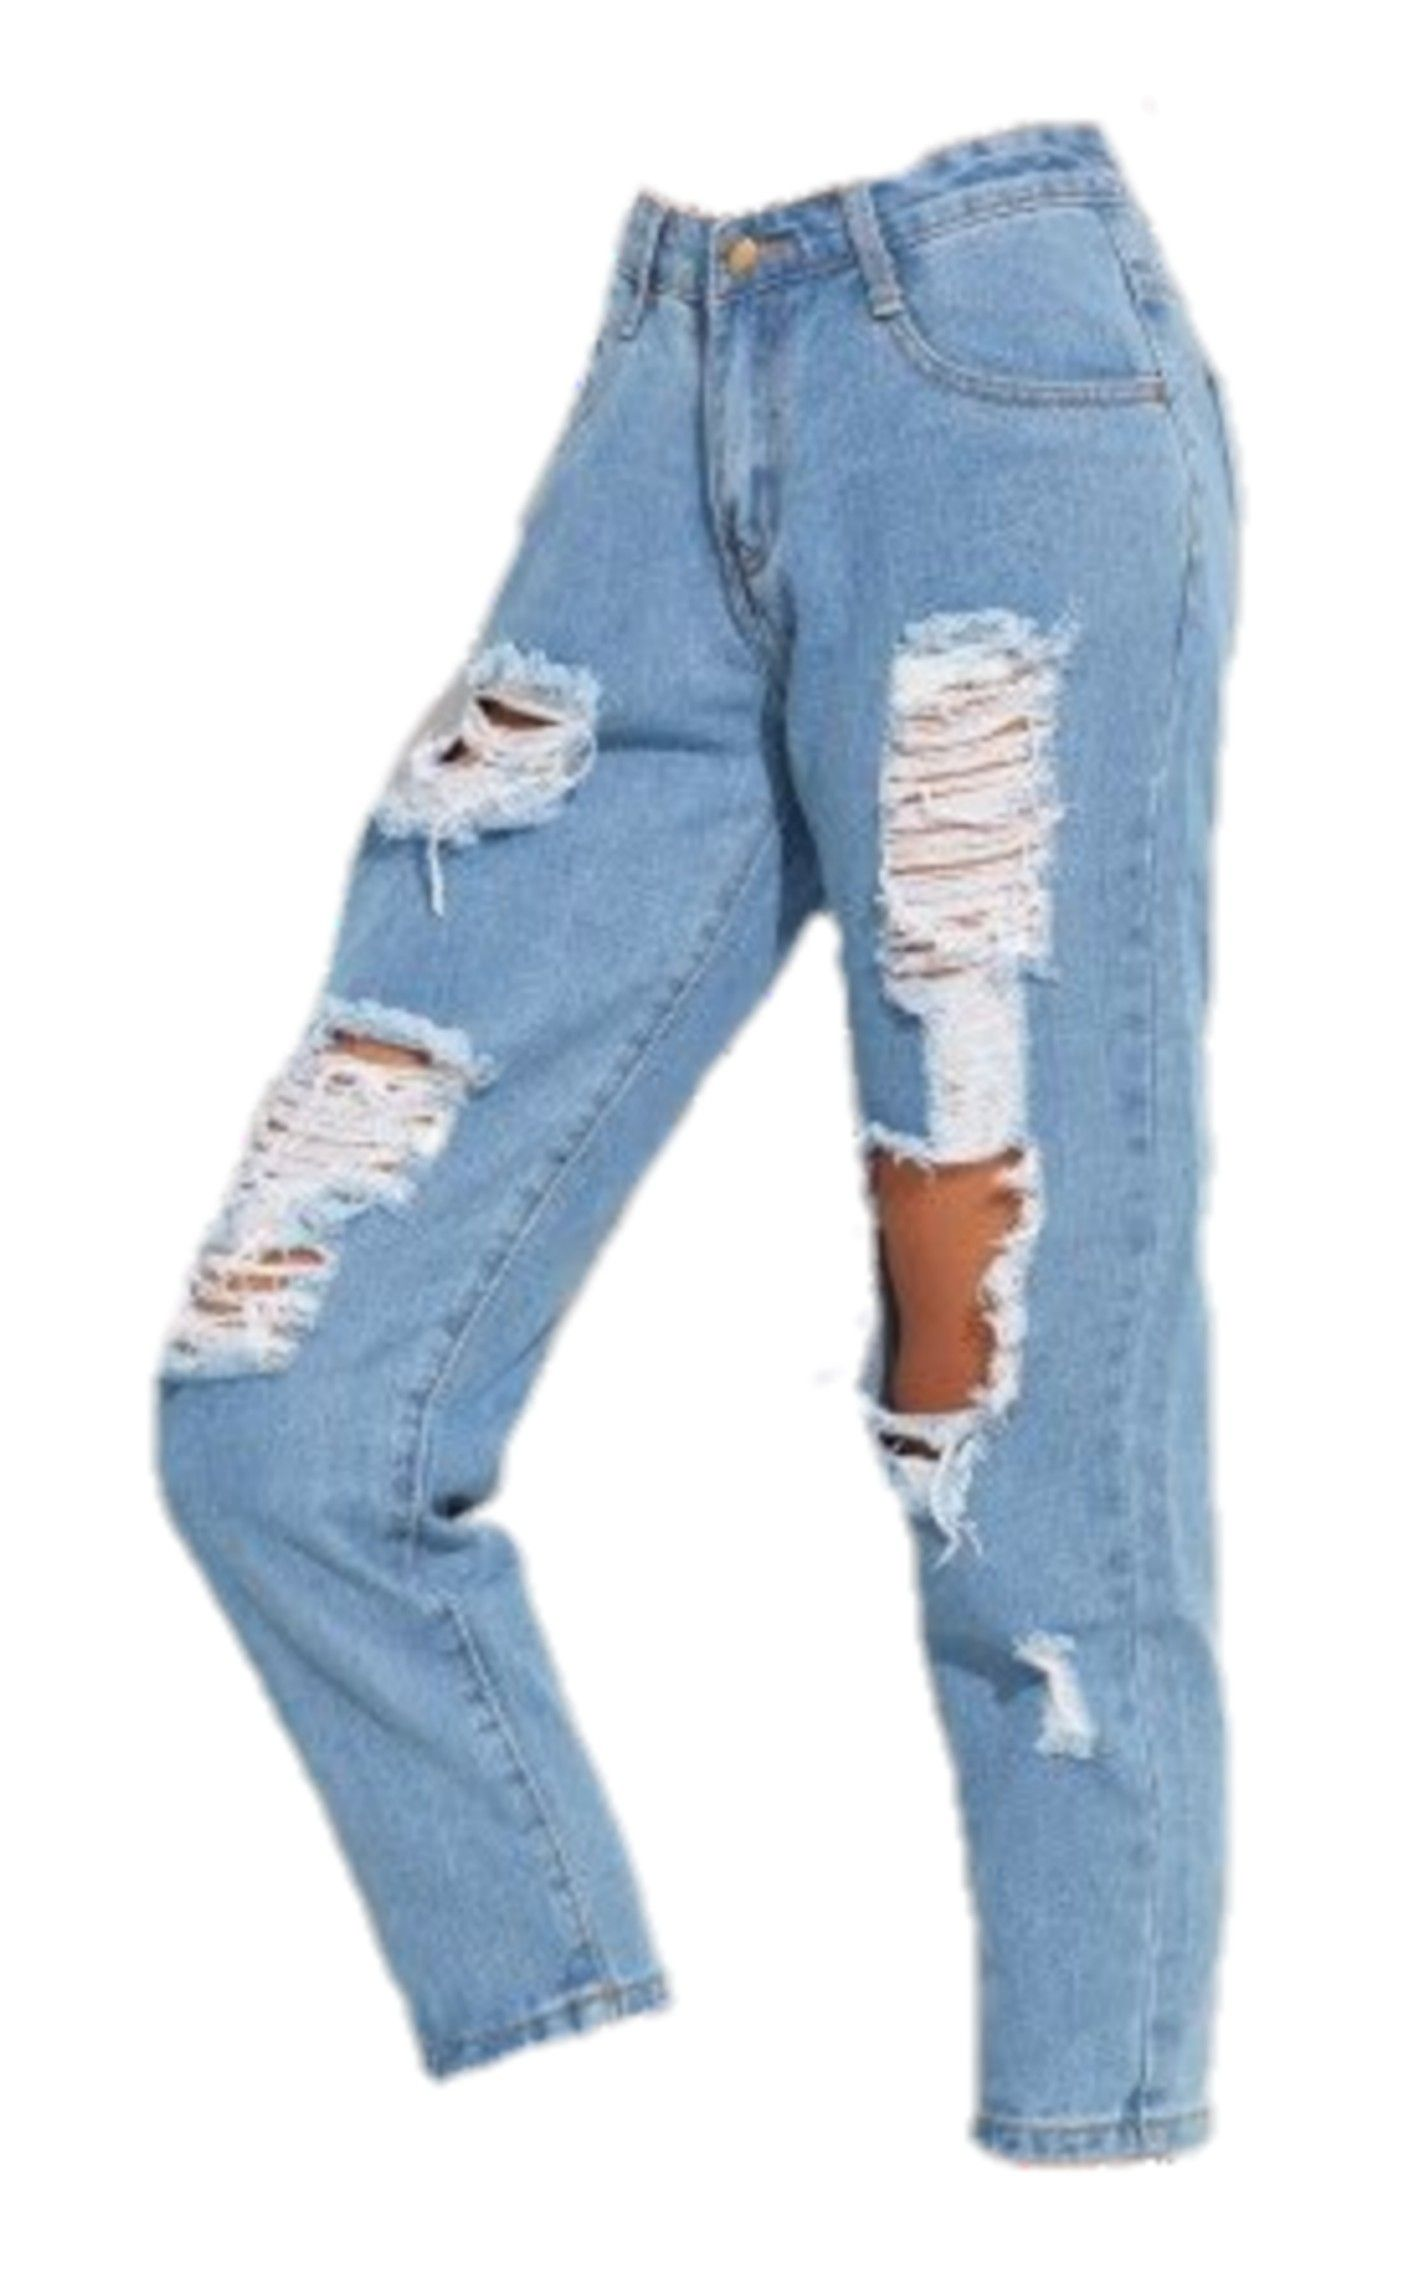 Ripped Jeans Polyvore Png Made By Artoftheweirdoboy Ripped Jeans Clothes Outfits